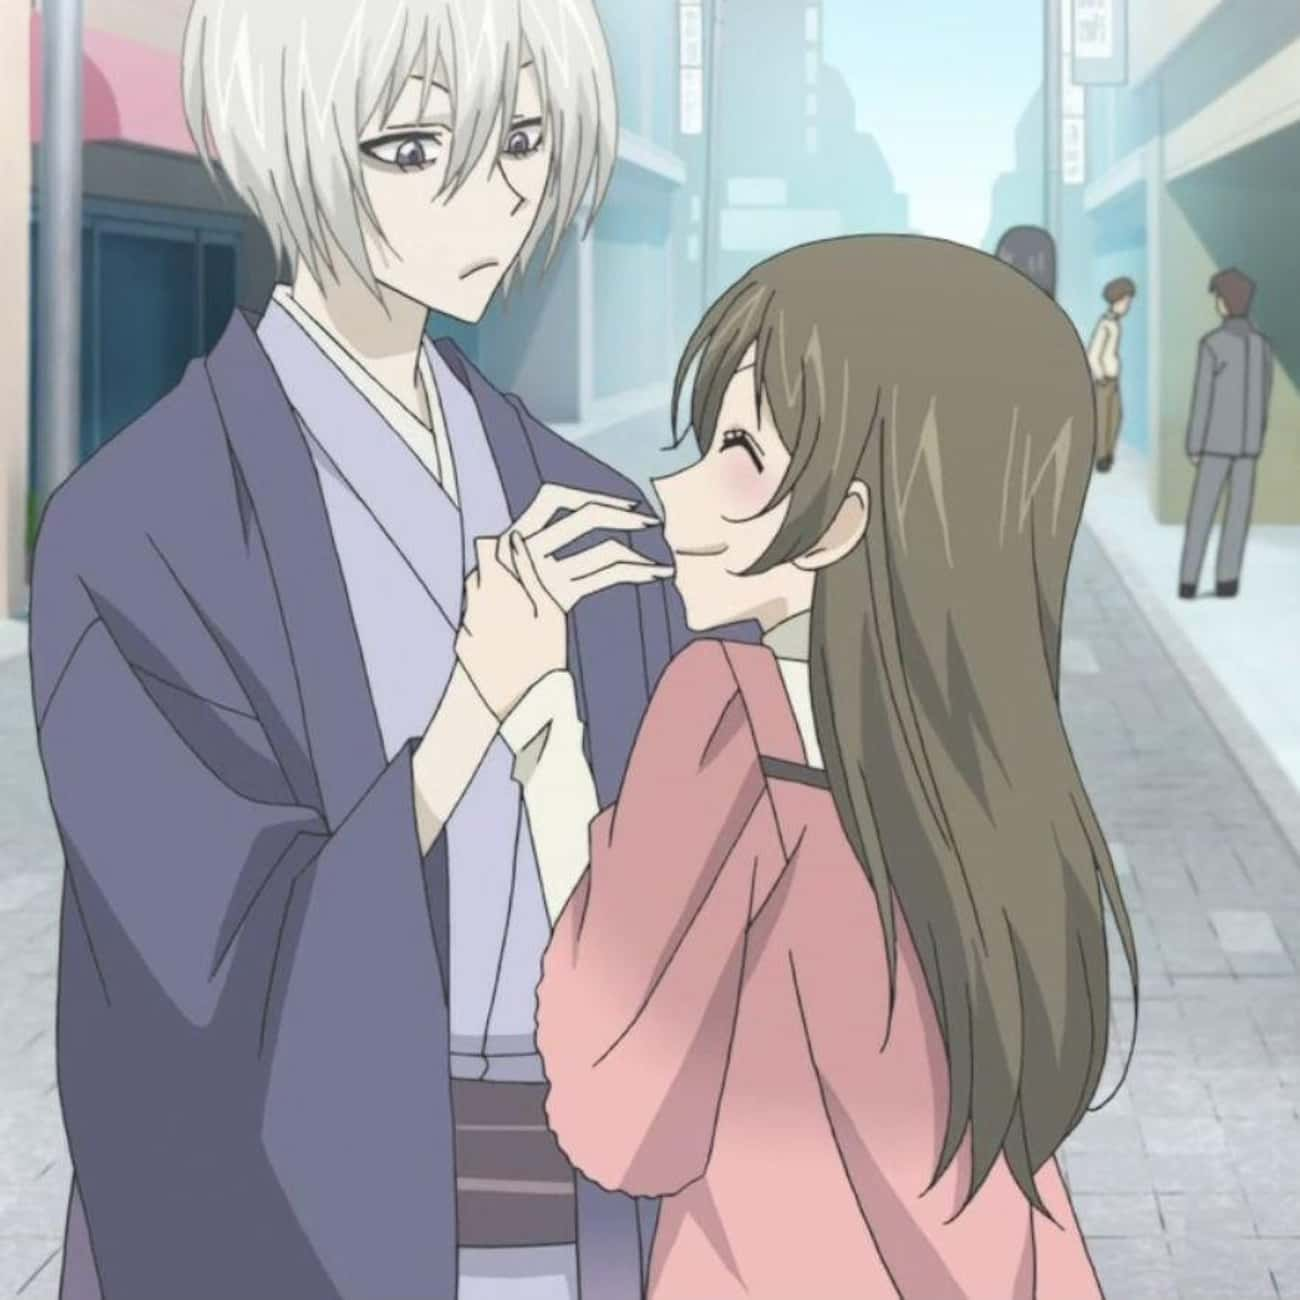 Kamisama Kiss is listed (or ranked) 1 on the list The Best Anime Like Noragami